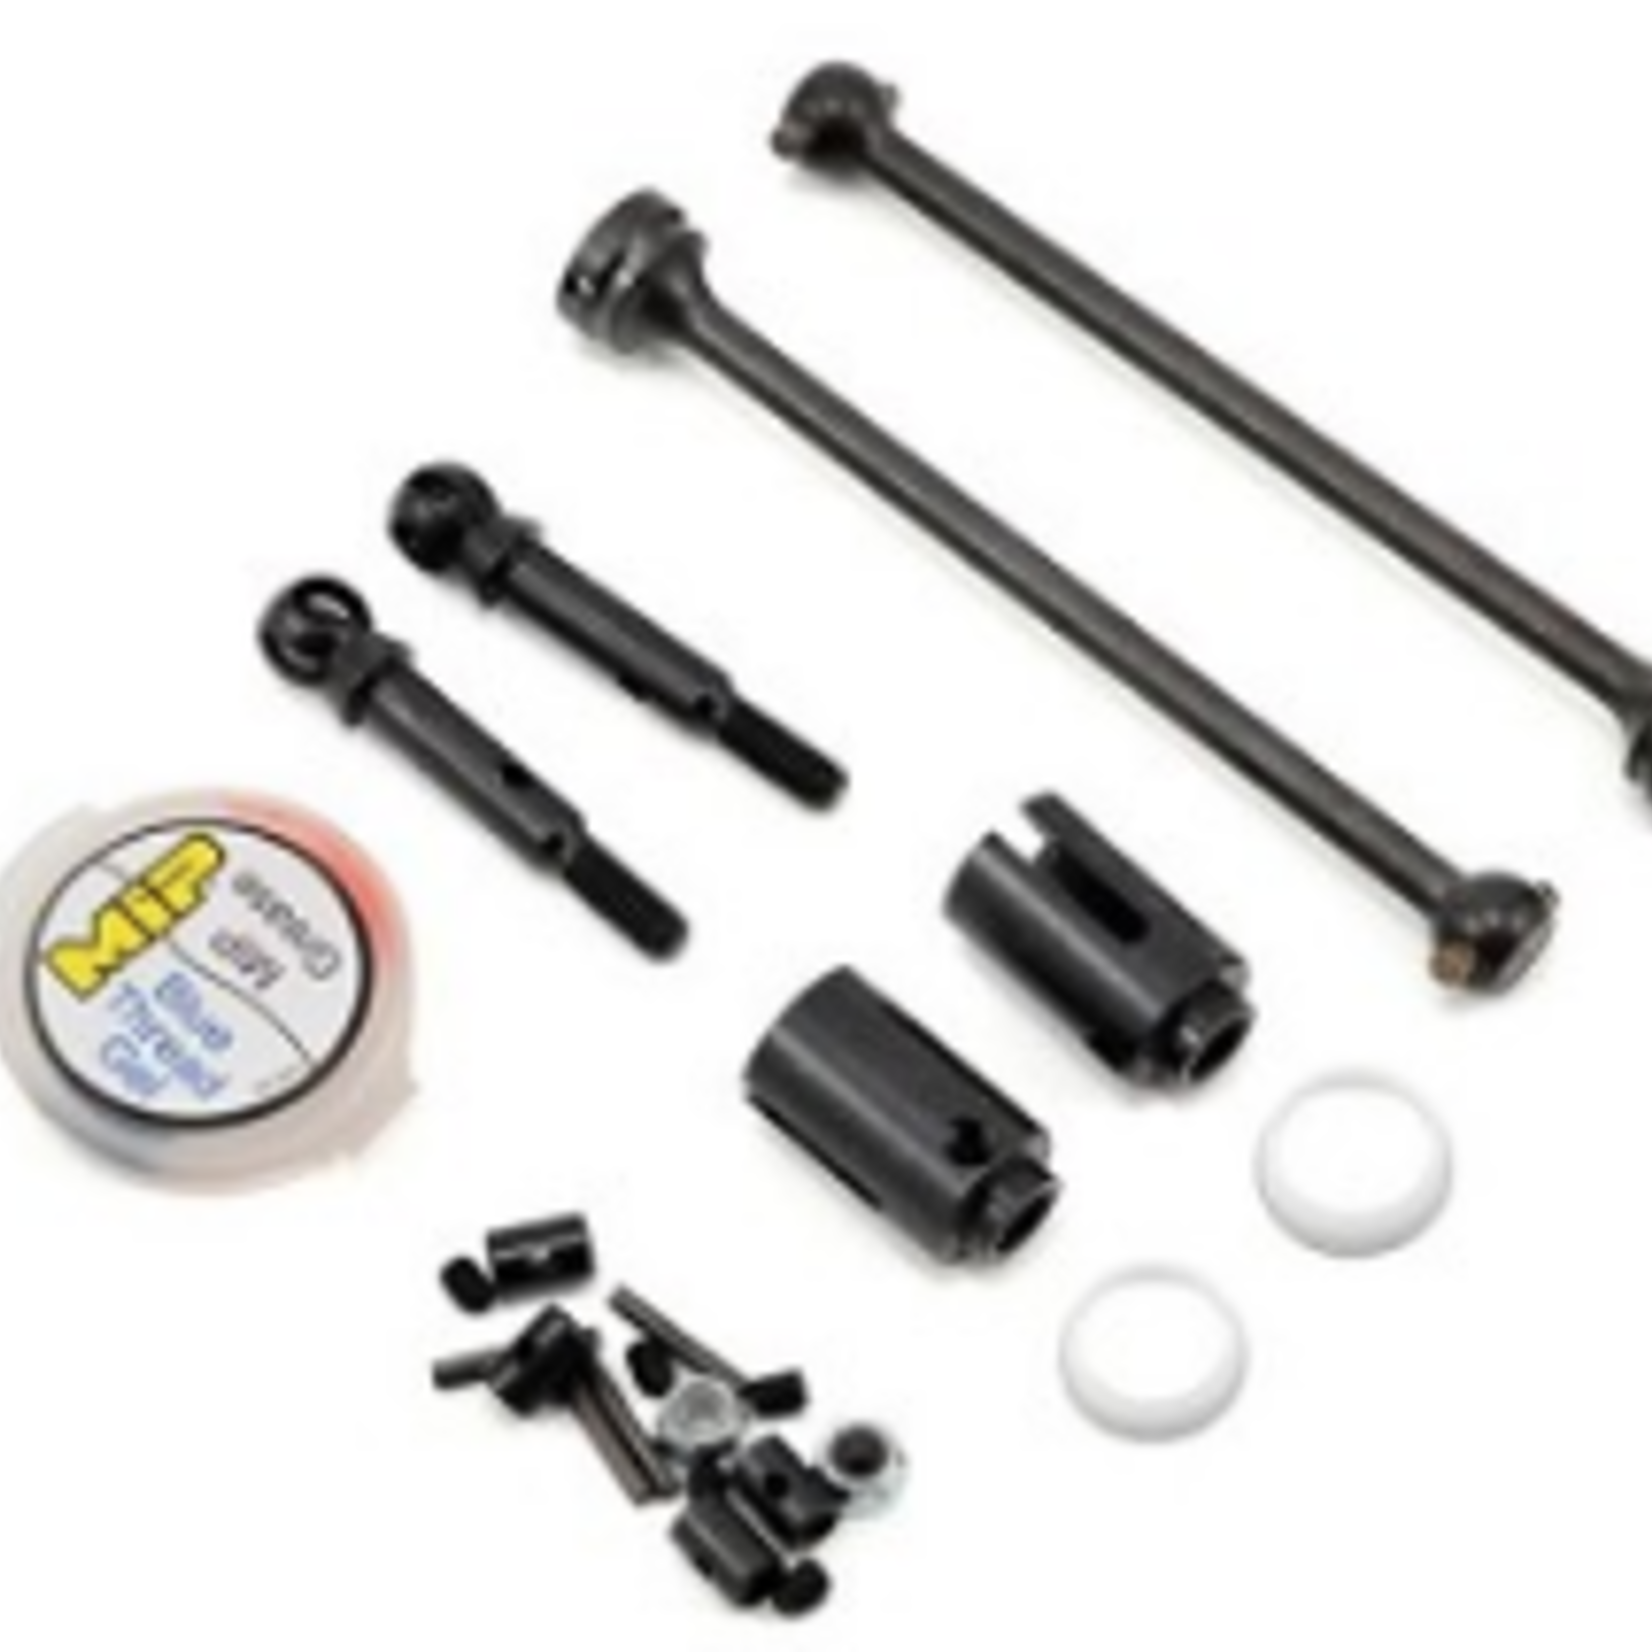 MIP - Moore's Ideal Products MIP08123 MIP C-CVD Kit: All Electric Rustler/Stampede